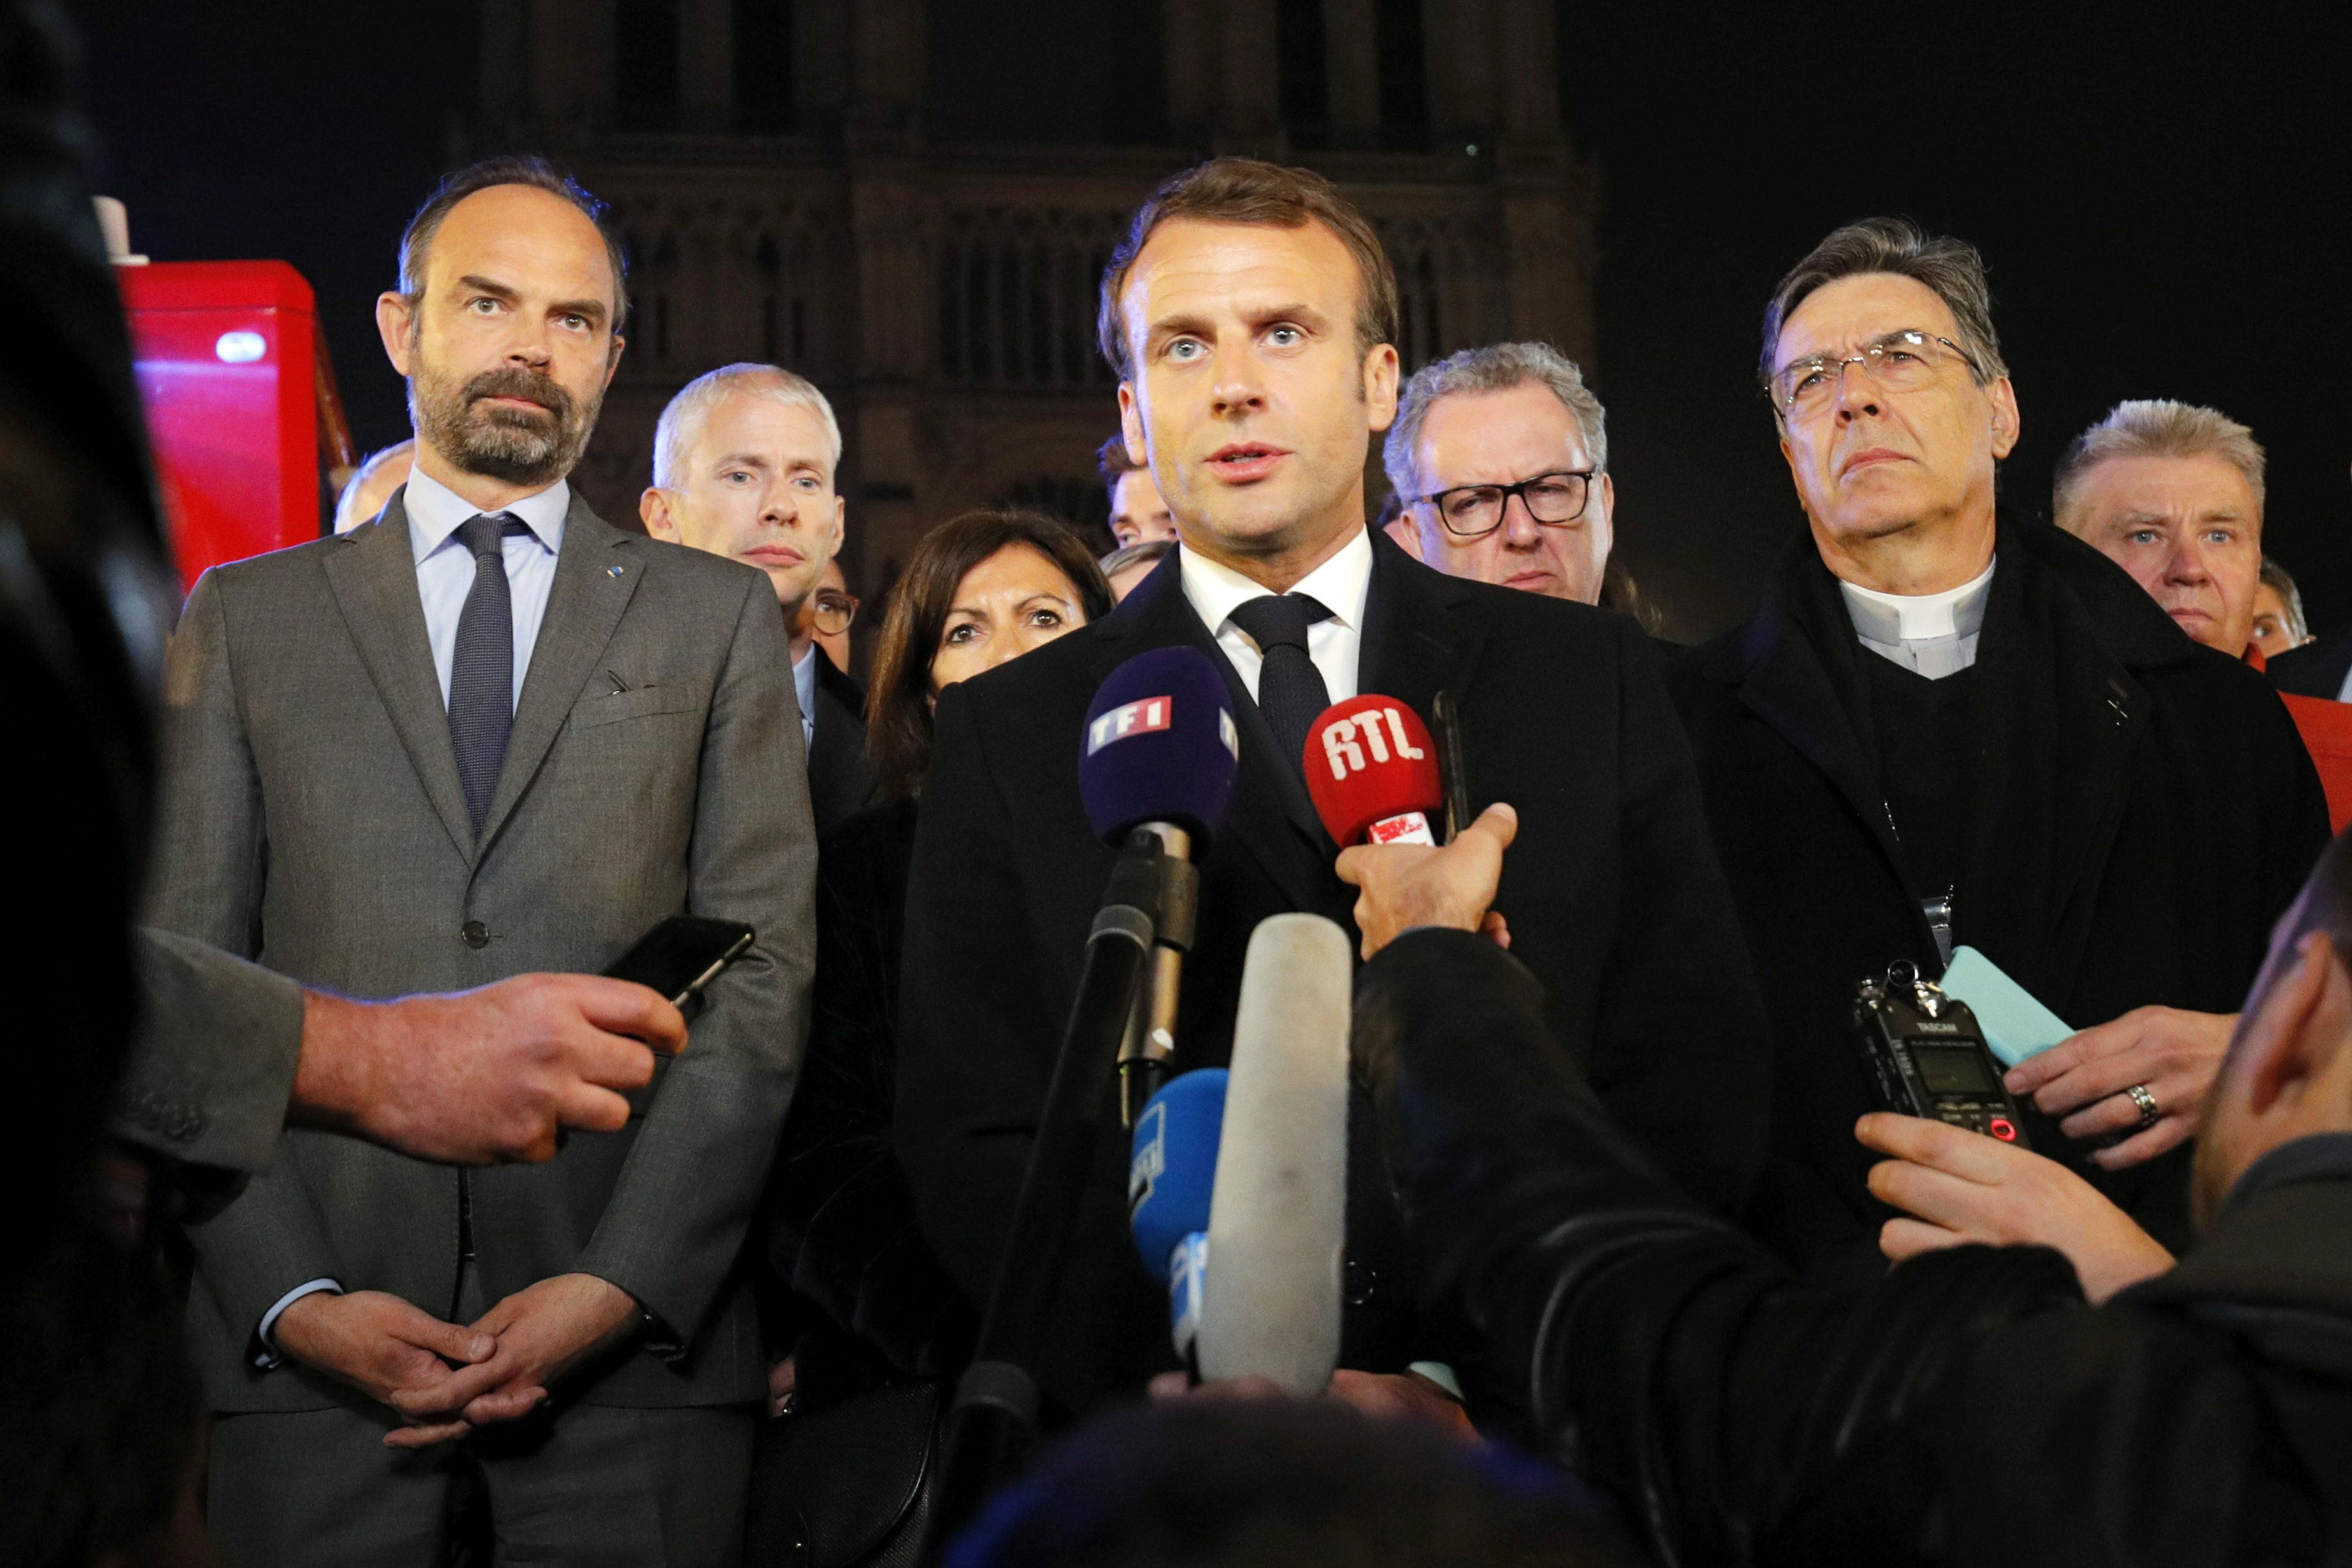 The Politics of Notre-Dame: Playing with Fire